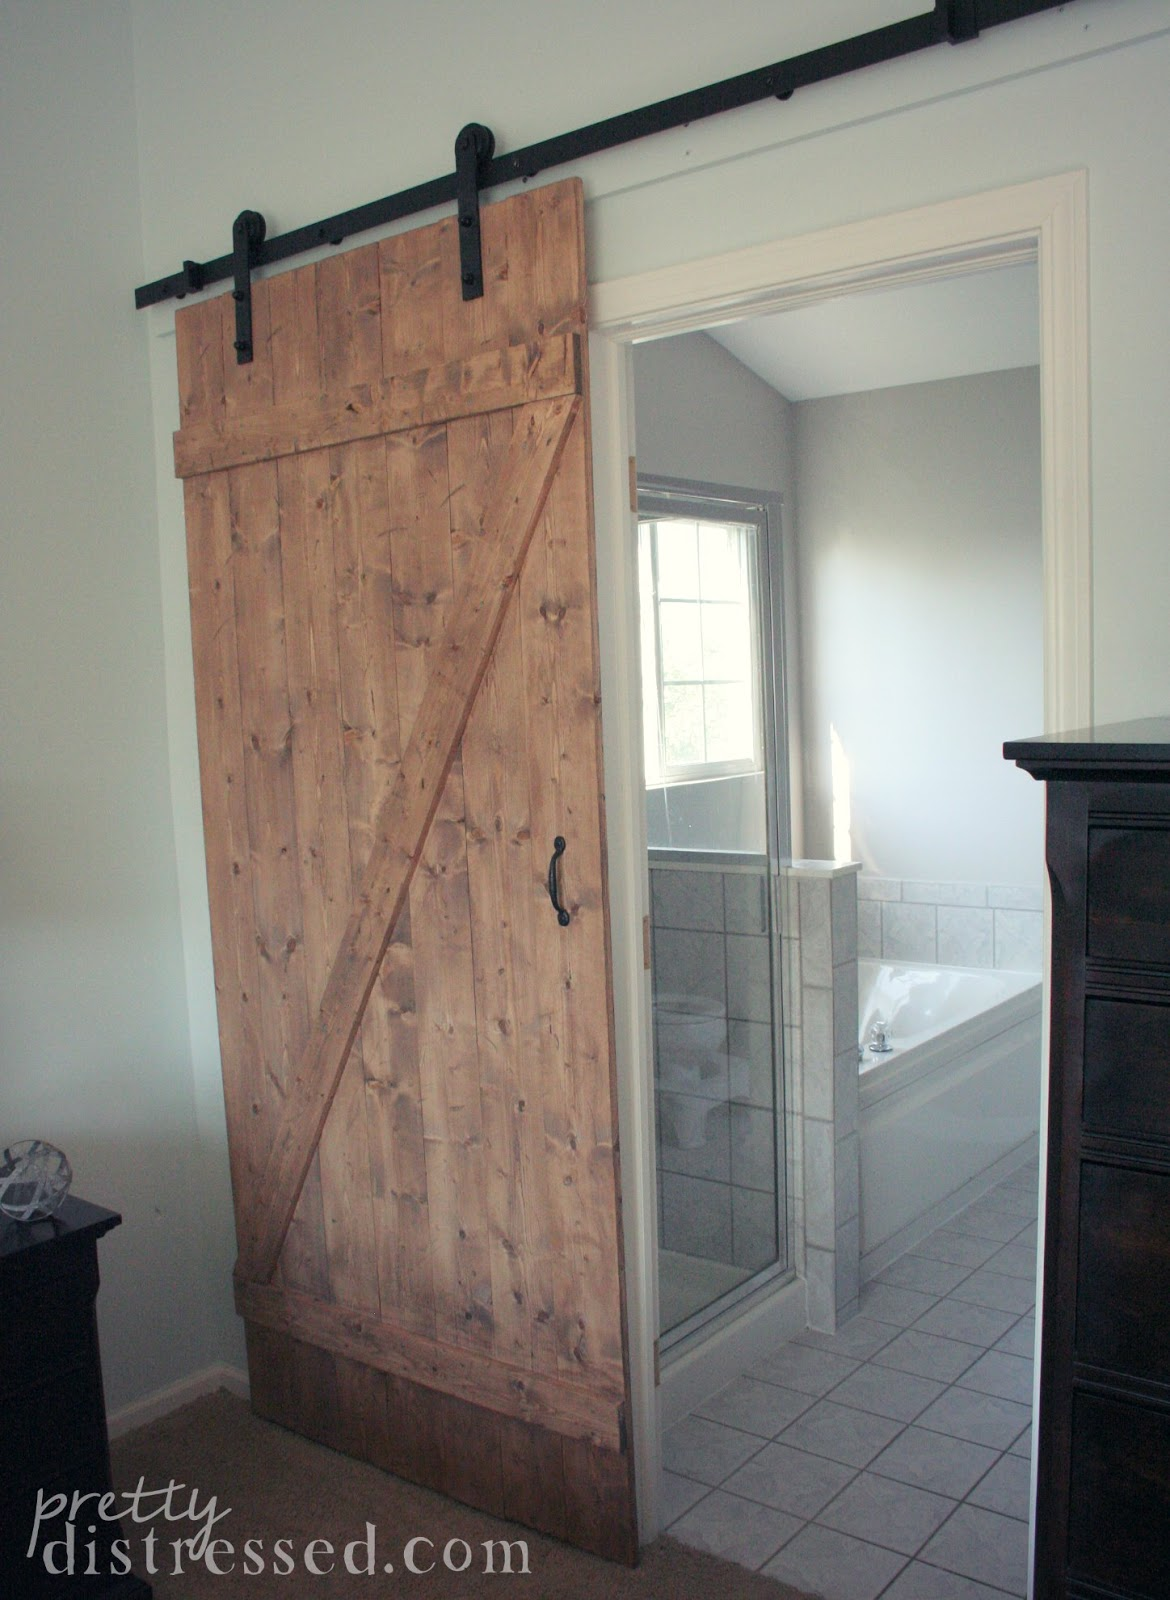 Pretty distressed diy distressed sliding barn door for Barn door pictures